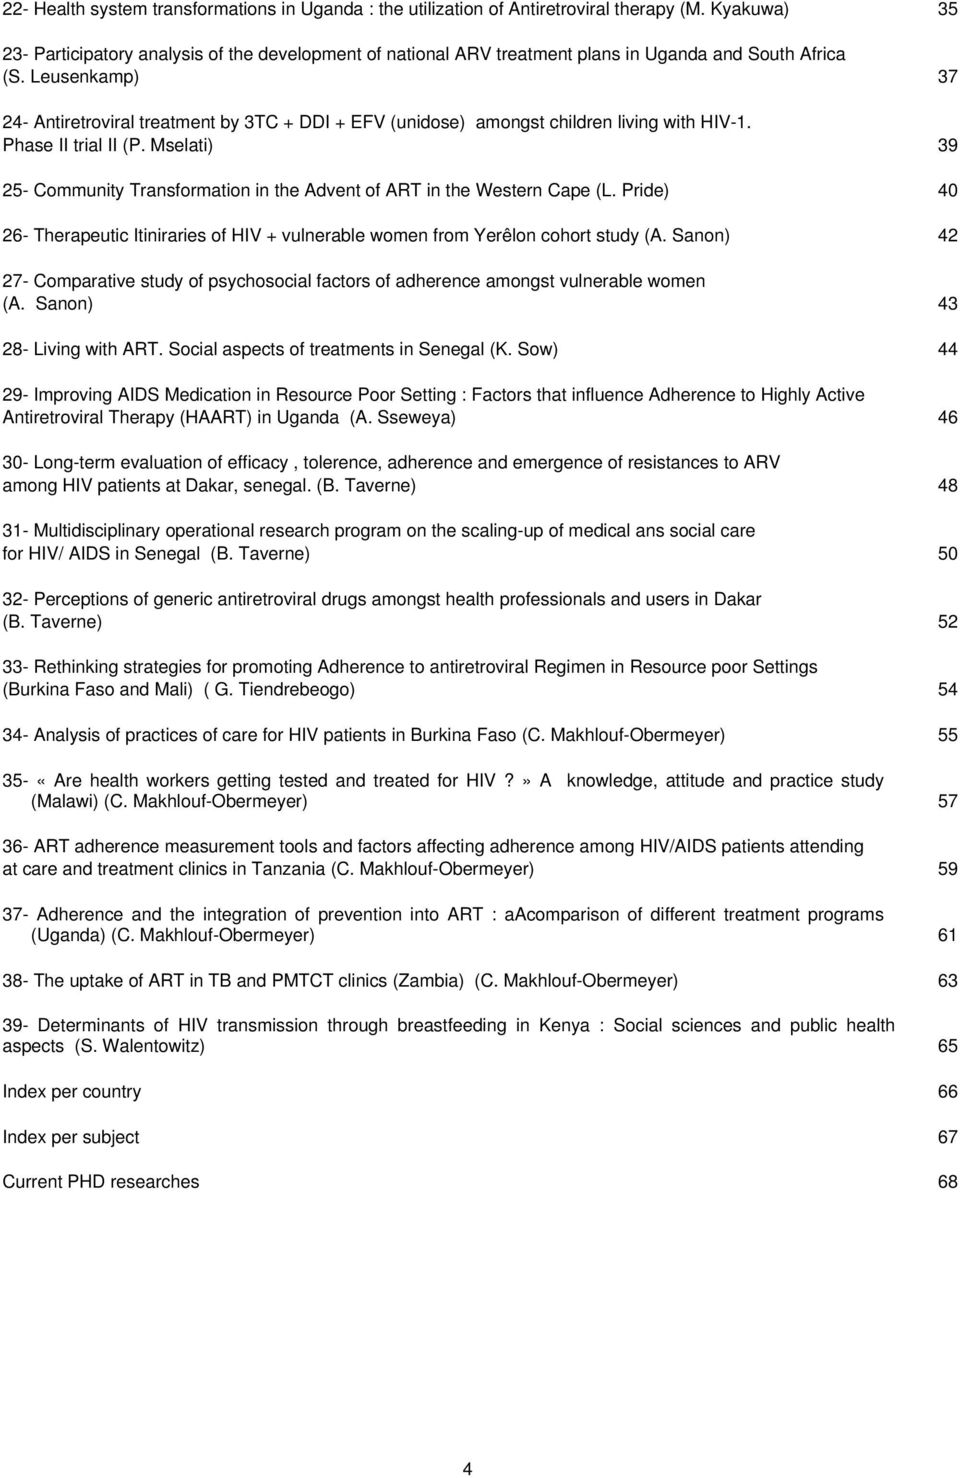 Leusenkamp) 37 24- Antiretroviral treatment by 3TC + DDI + EFV (unidose) amongst children living with HIV-1. Phase II trial II (P.